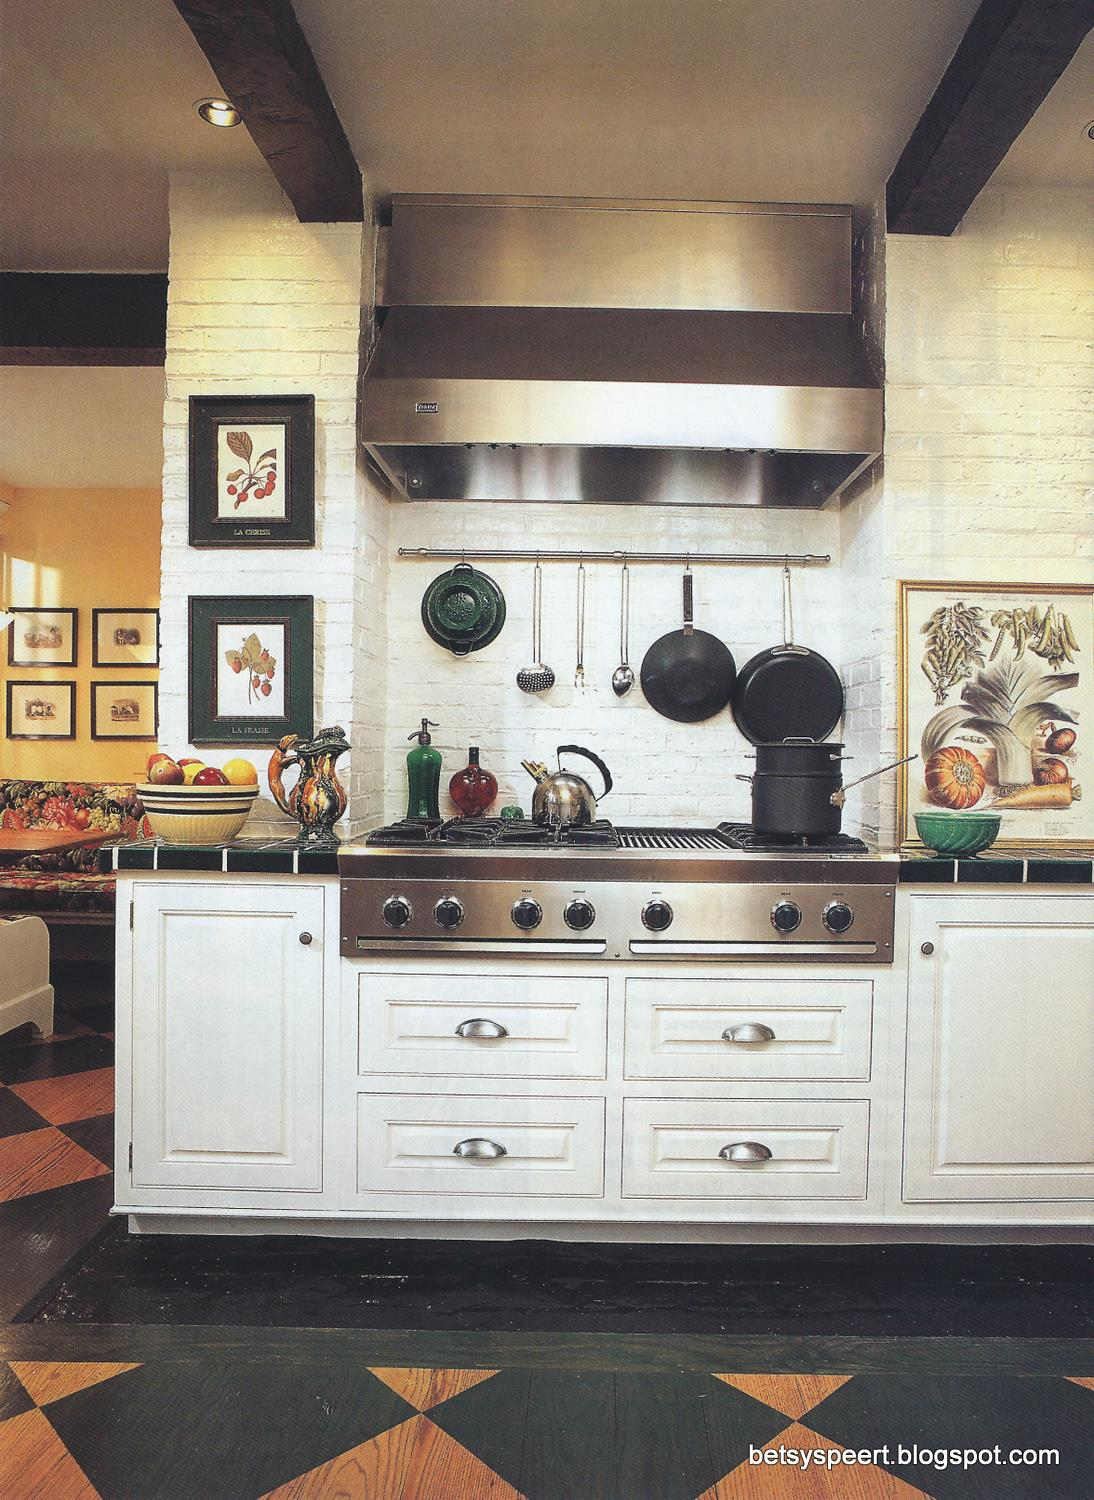 Betsy Speert\'s Blog: An Aeorsmith Kitchen